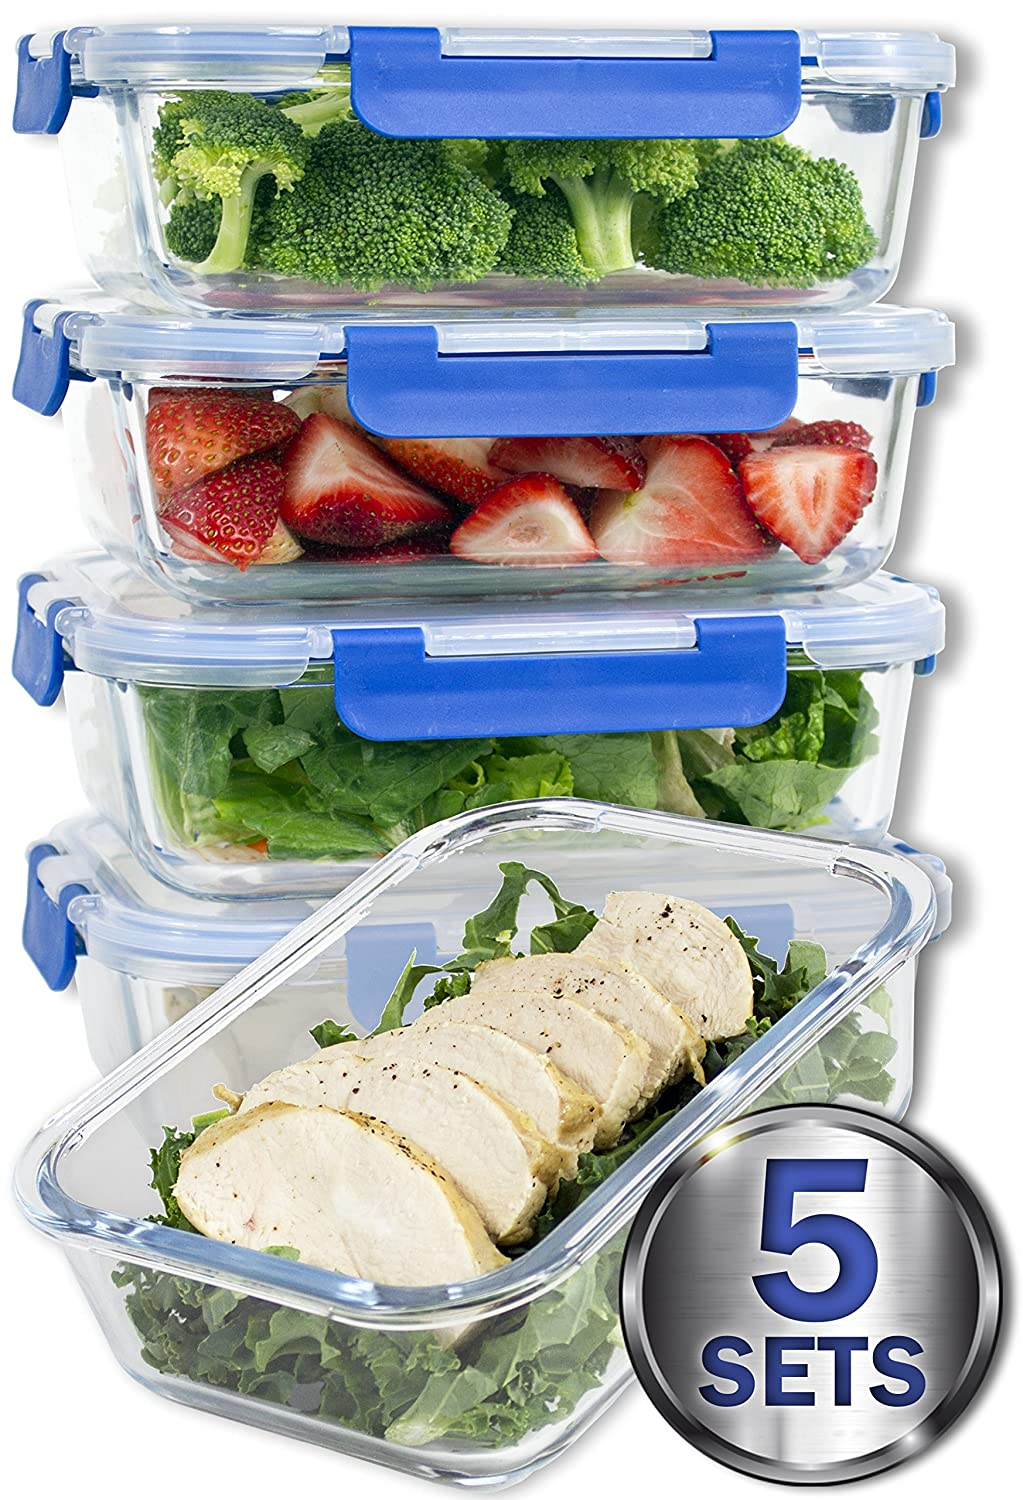 [LARGER PREMIUM 5 SET] 36 Oz. Glass Meal Prep Containers with Lifetime Lasting Snap Locking Lids Glass Food Containers BPA-Free, Microwave, Oven, Freezer and Dishwasher Safe (4.5 Cups, 36 Oz.) Misc Home